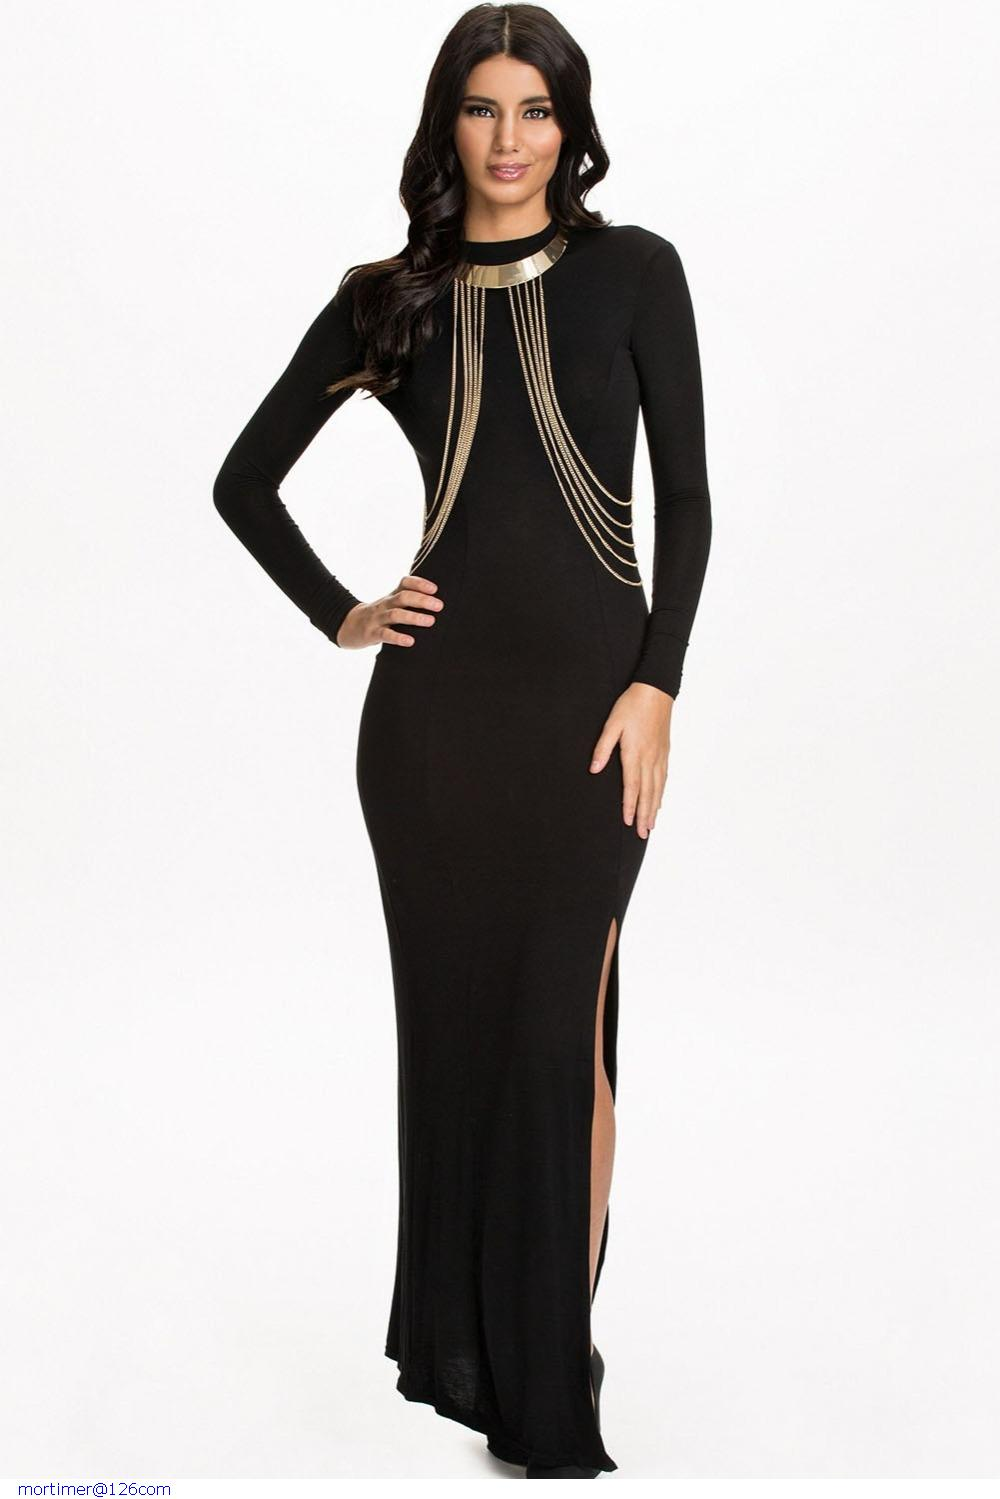 Black Formal Gown Fashion Women Party Dresses Chain Embellished Long Sleeve Maxi Evening Dress